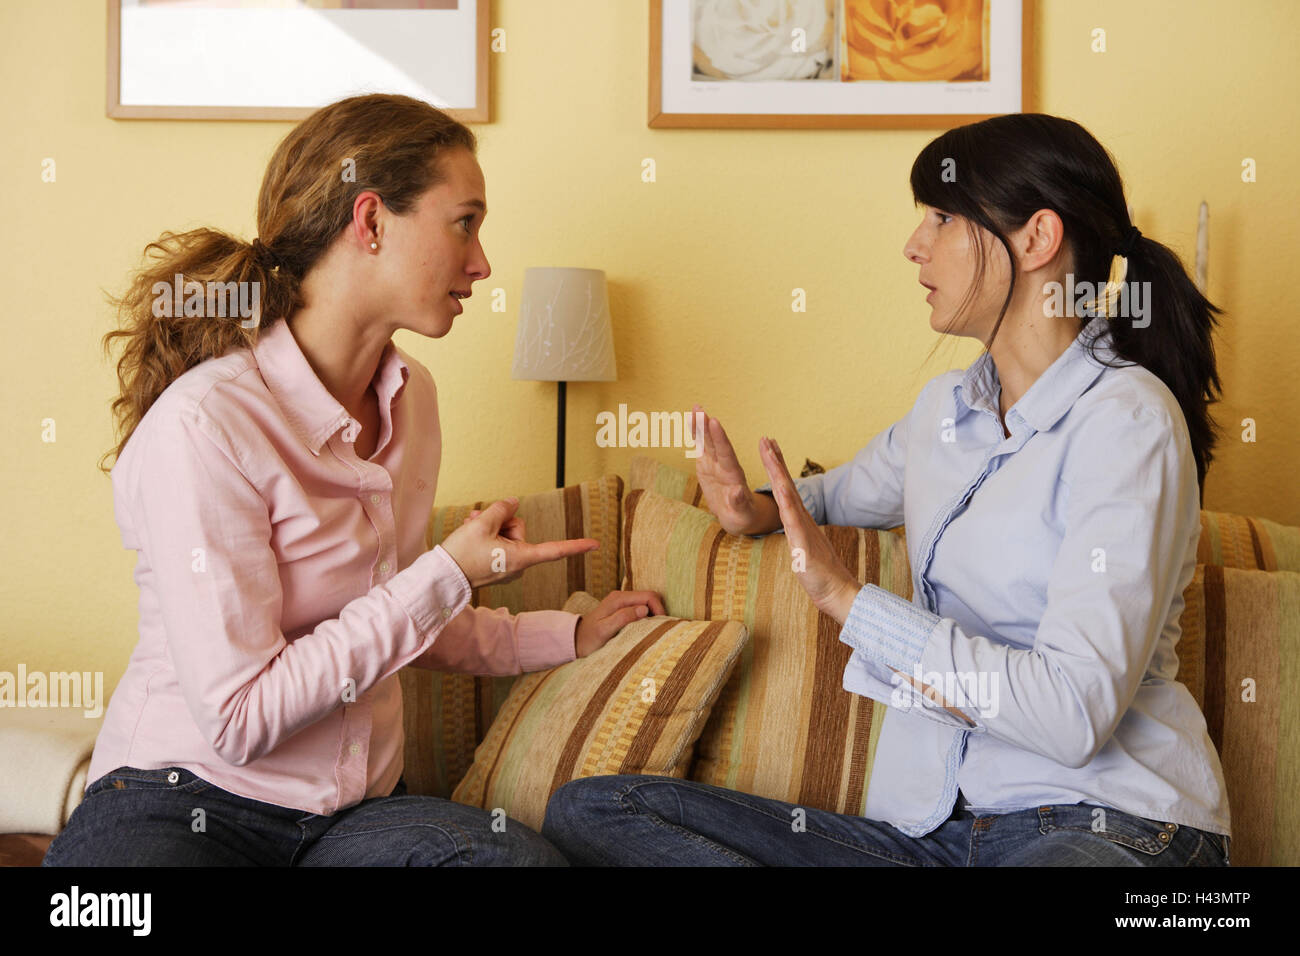 Sitting rooms, women, sofa, sit, fight conversation, person, friends, sit, mark towards, reproaches, conflict, conversation, - Stock Image